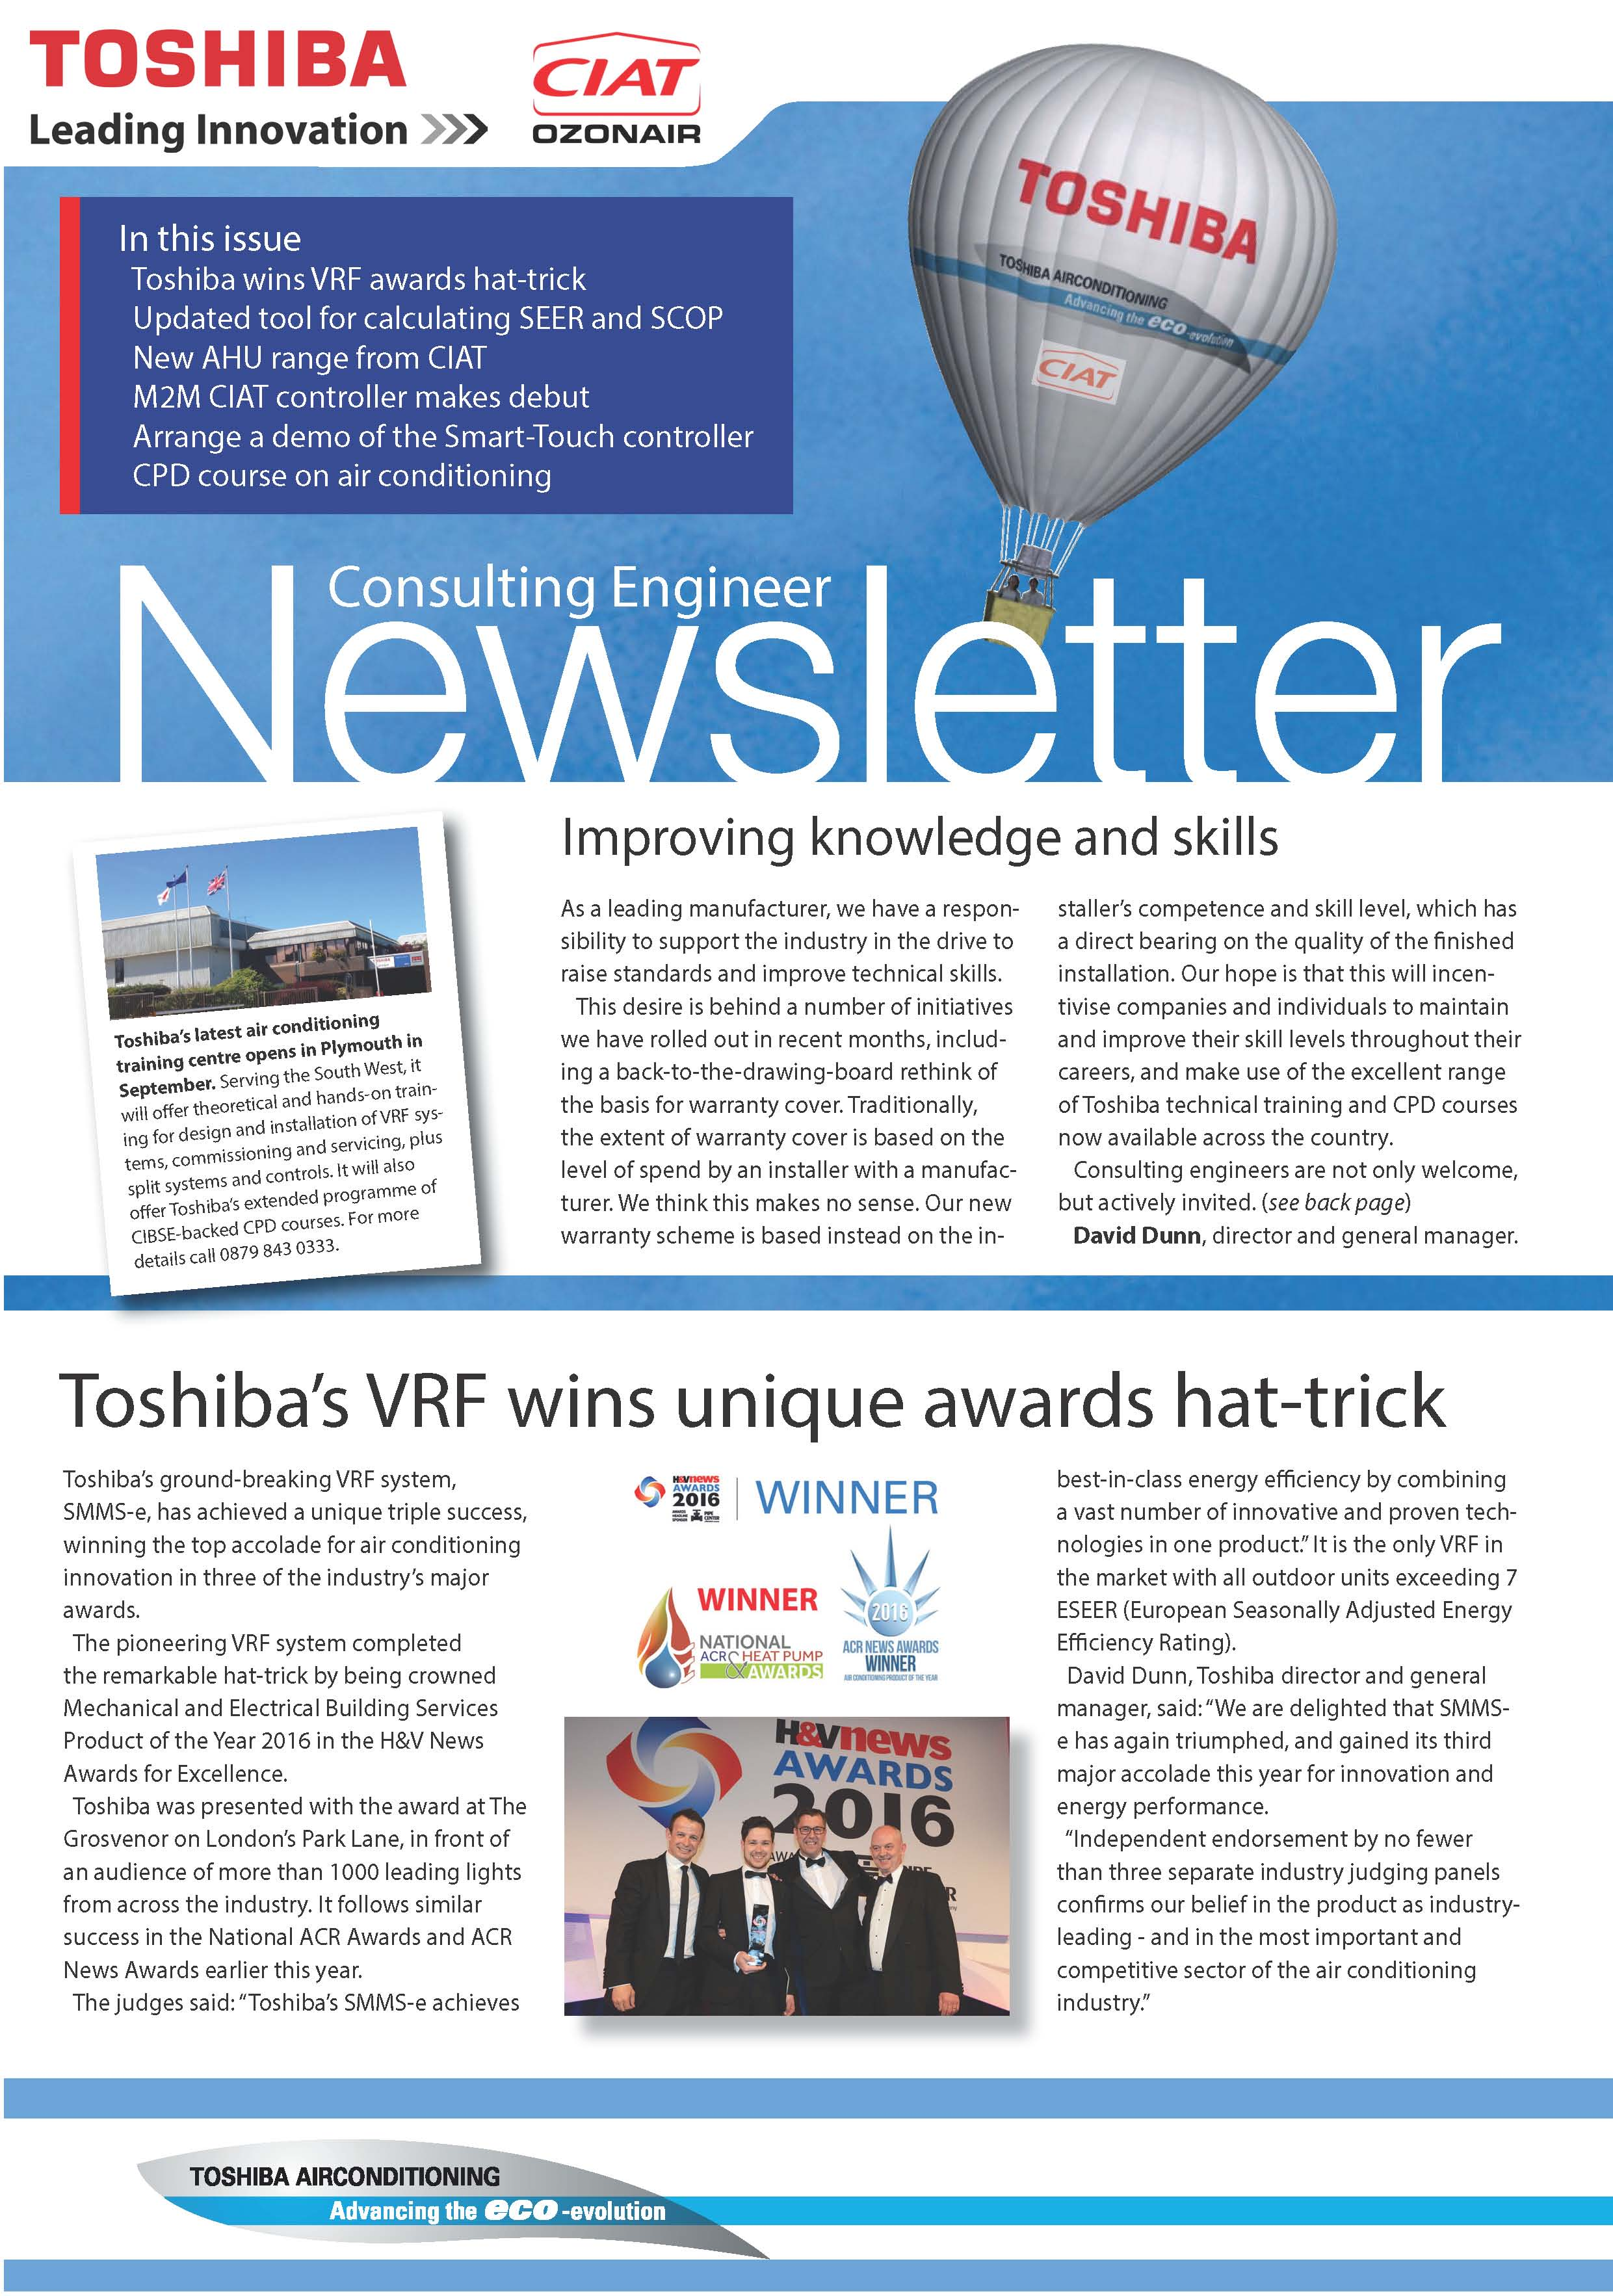 Newsletter for Consulting and Design Engineers - Toshiba Air